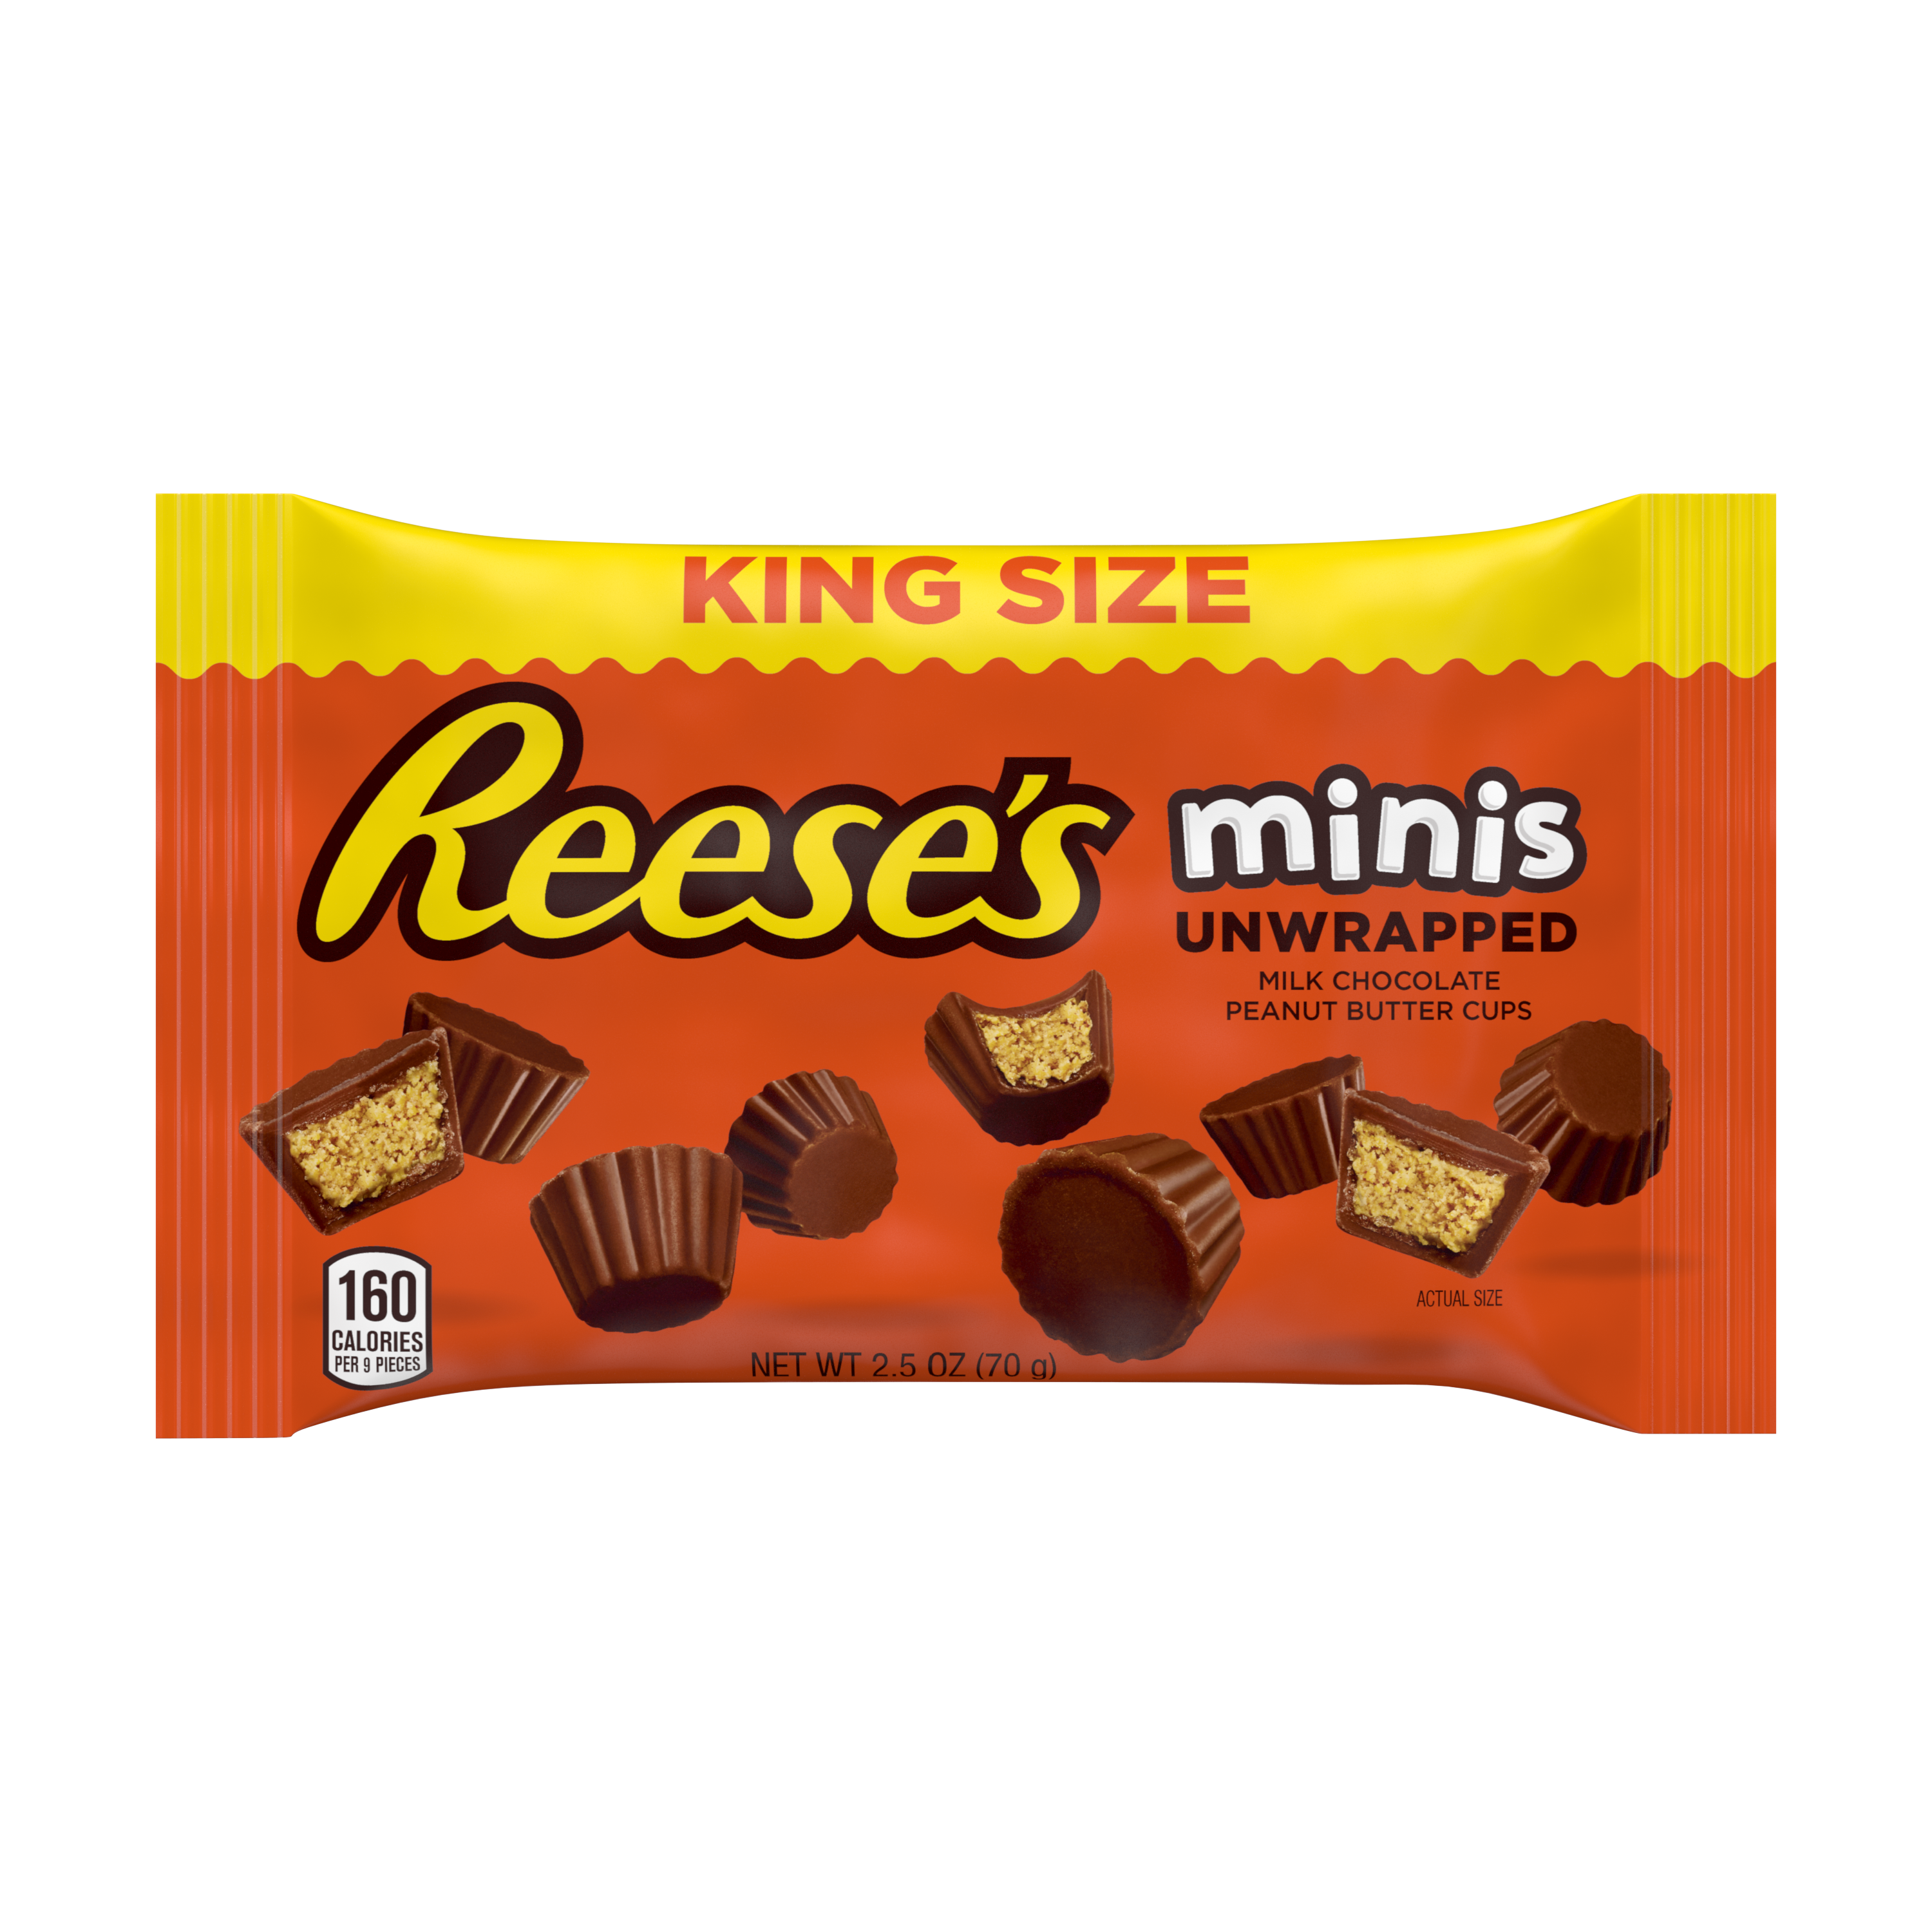 REESE'S Minis Milk Chocolate King Size Peanut Butter Cups, 2.5 oz bag - Front of Package